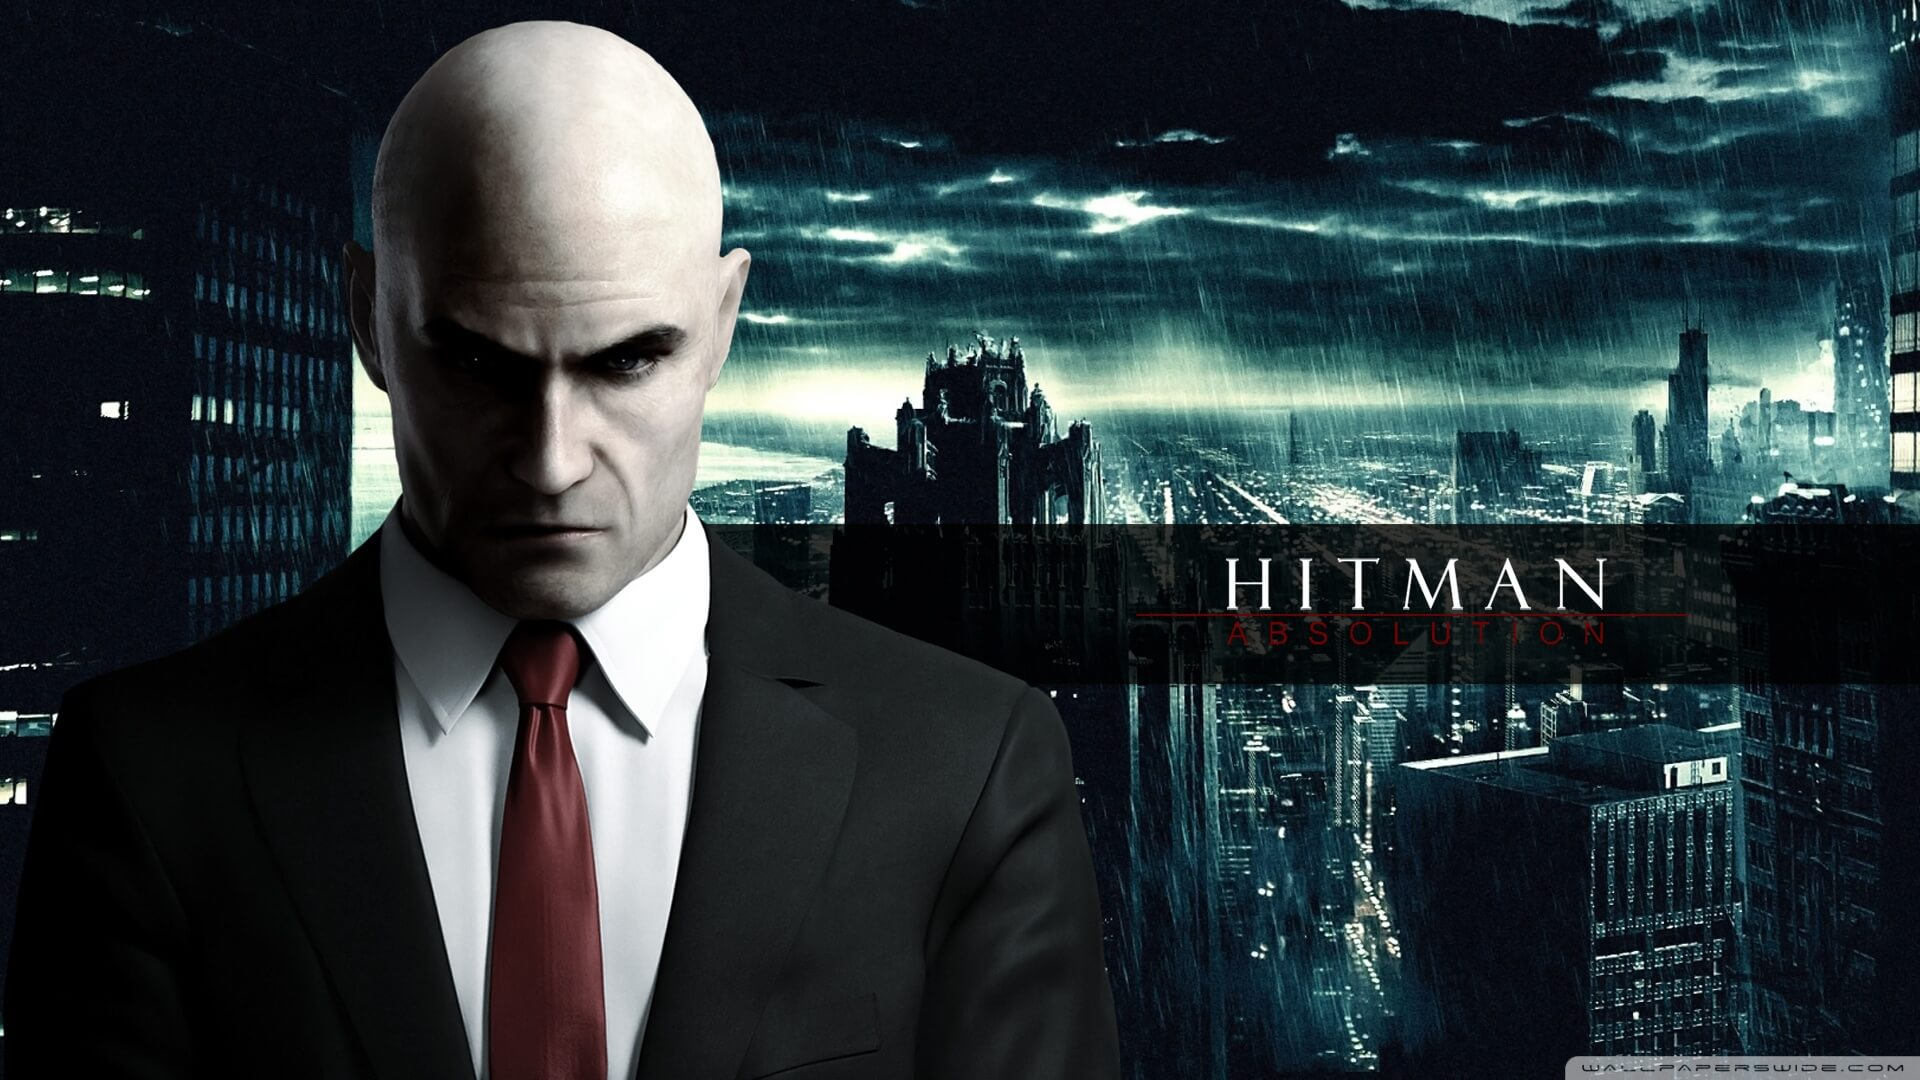 Hitman Absolution Cheats Ps3 Infinite Health Lastsupport